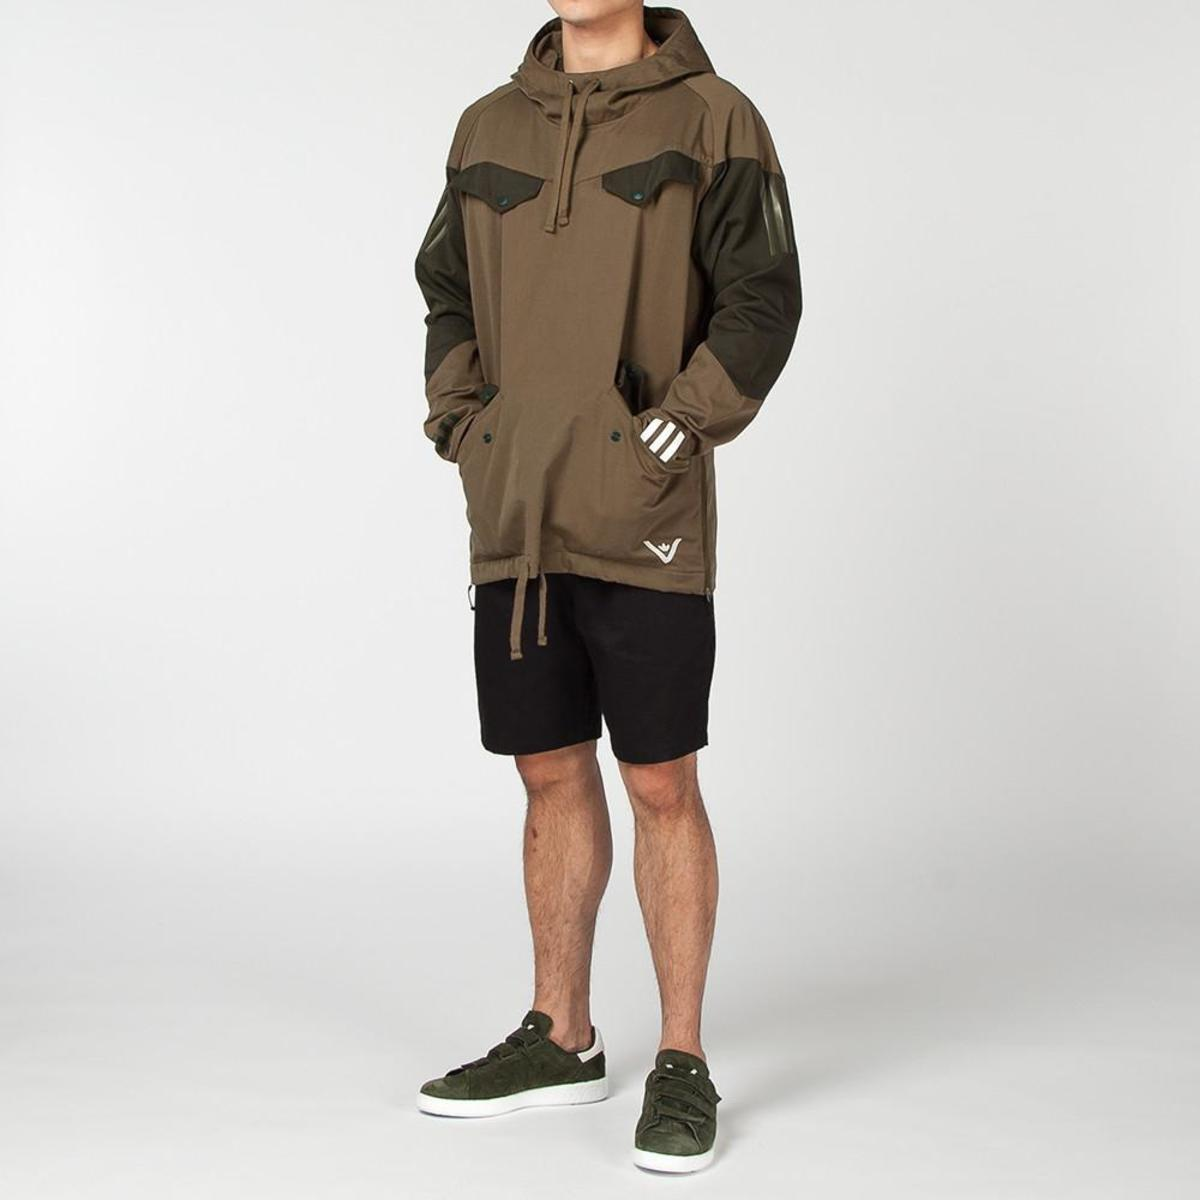 5b71d3758df3 ADIDAS ORIGINALS BY WHITE MOUNTAINEERING PULLOVER JACKET   TRACE ...